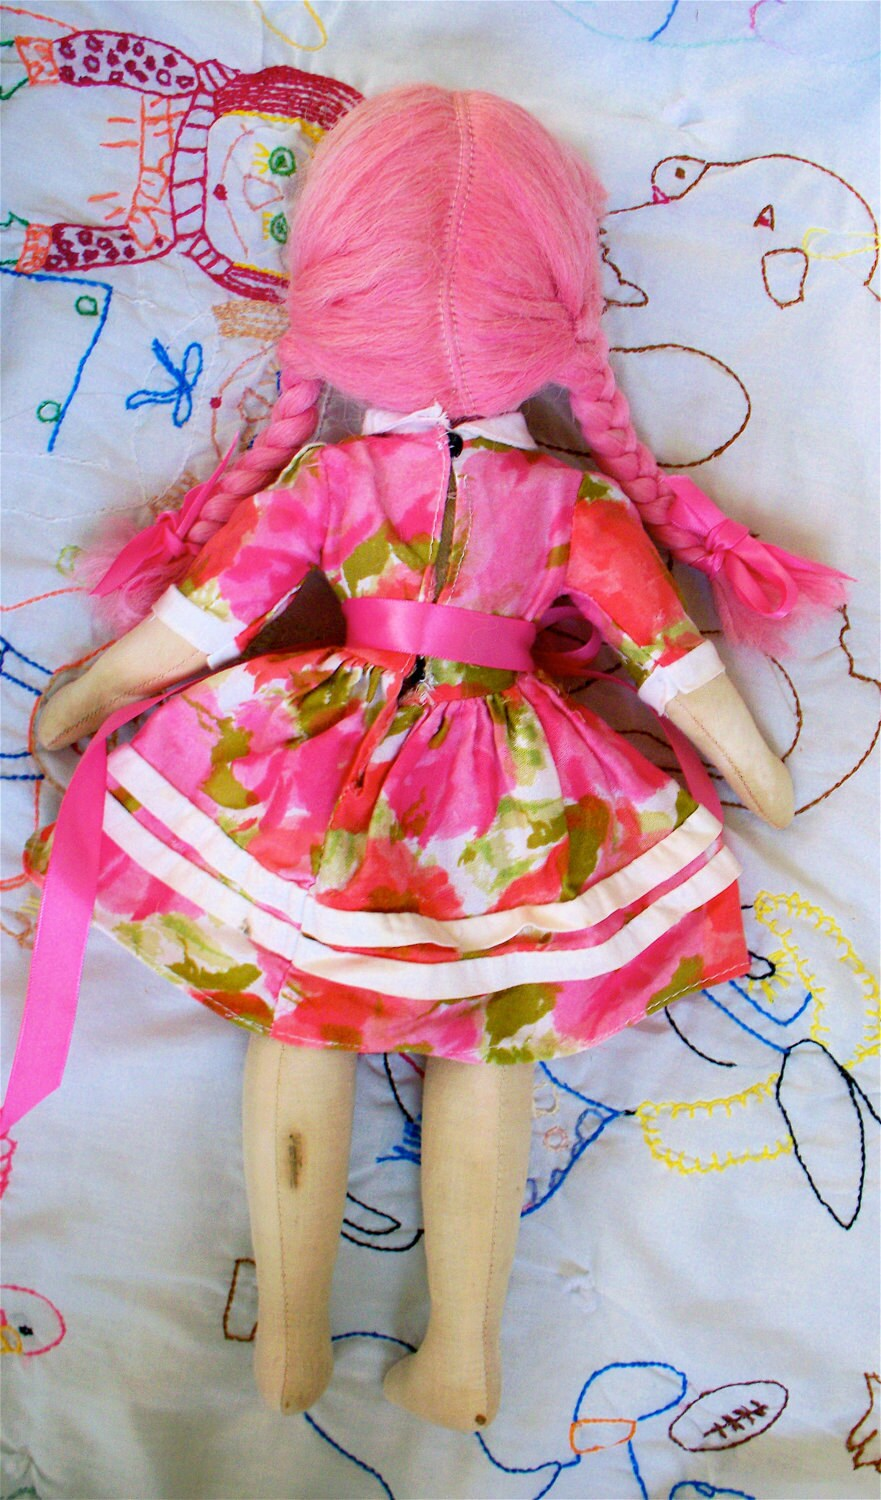 Rare Vintage Kitsch 1950s Pink Haired Big Eyed Sawdust Filled  Jointed Polish Doll